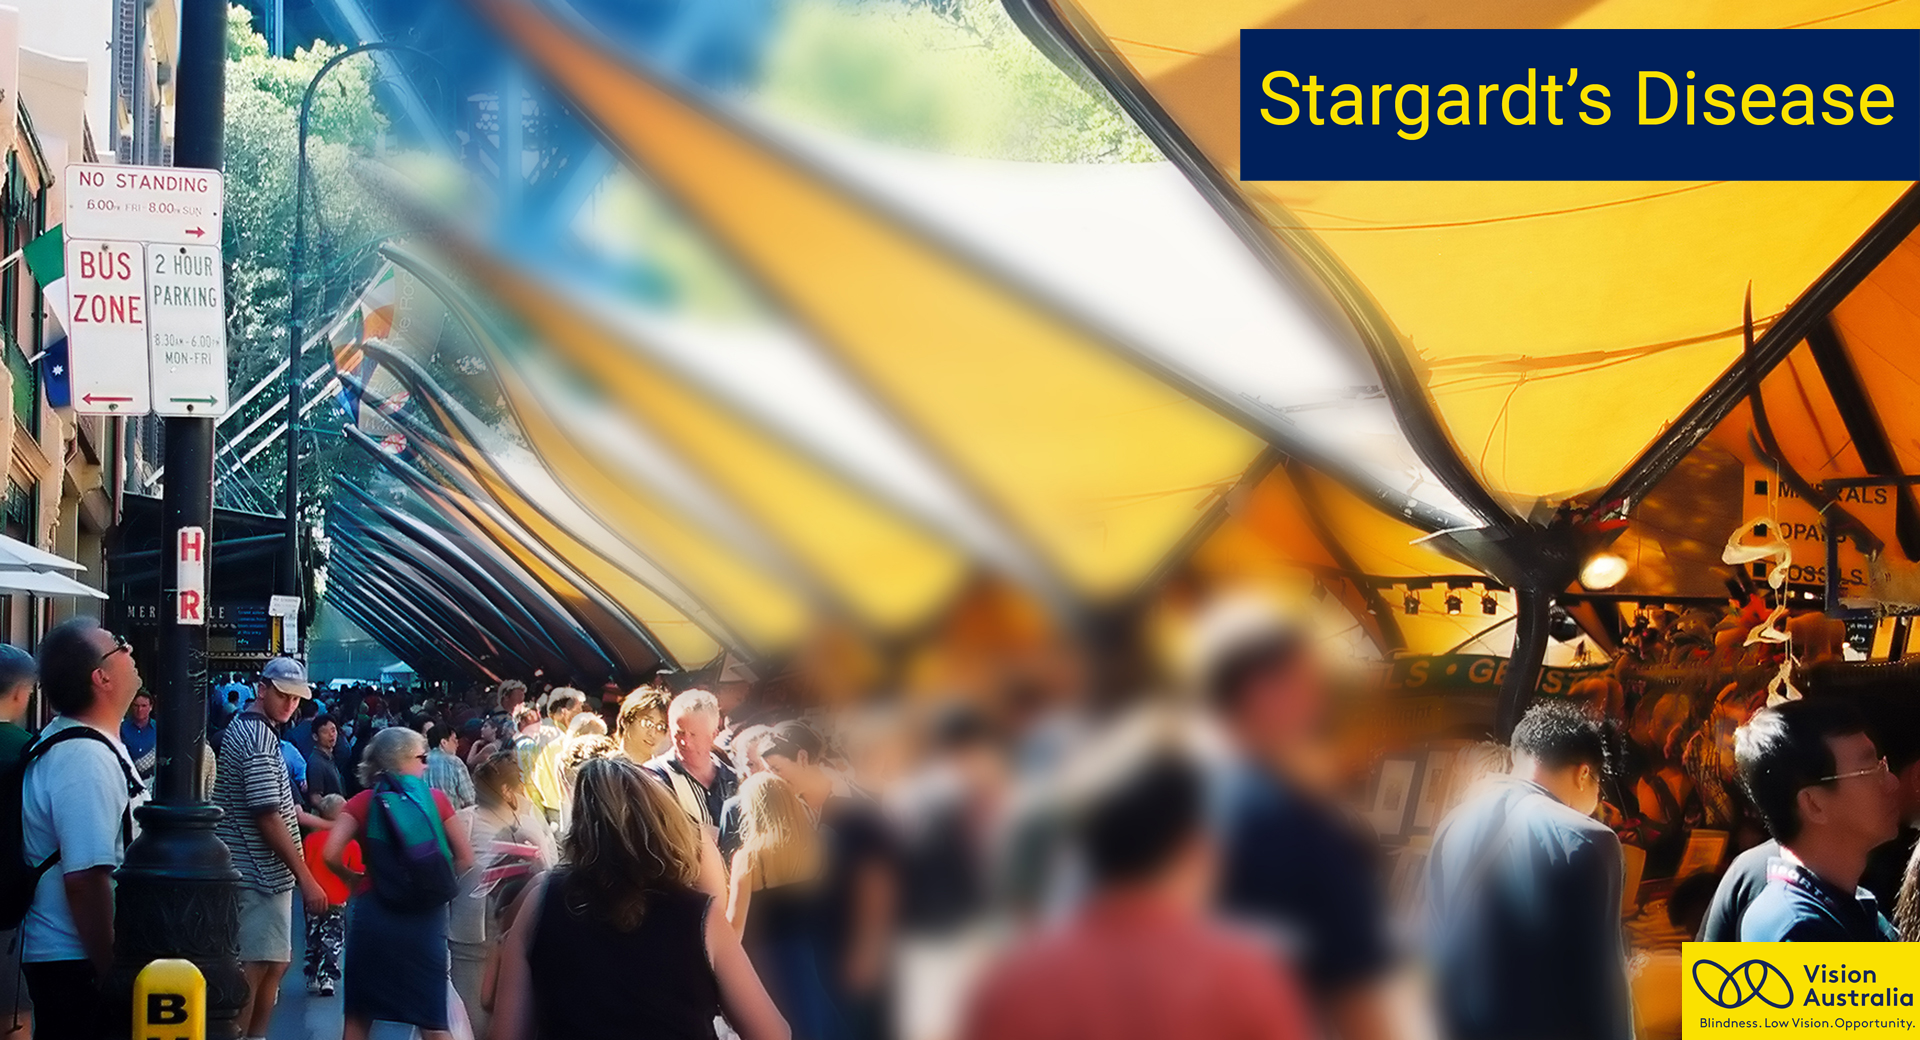 Simulation image of how stargardt's disease affects vision. Scene has middle area blurred.